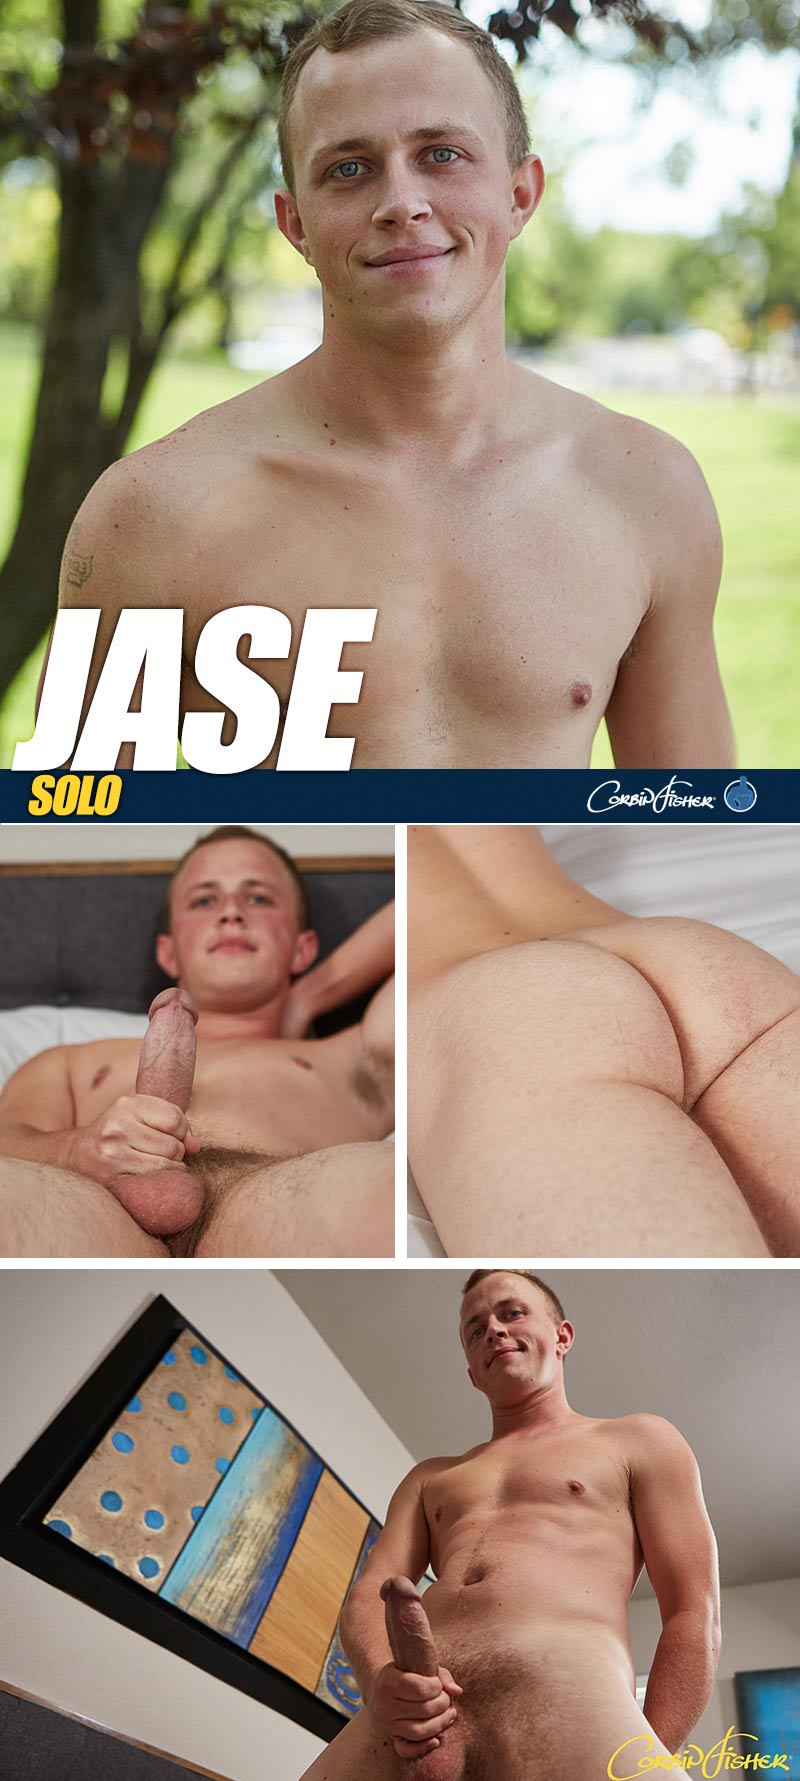 Jase's Solo at CorbinFisher